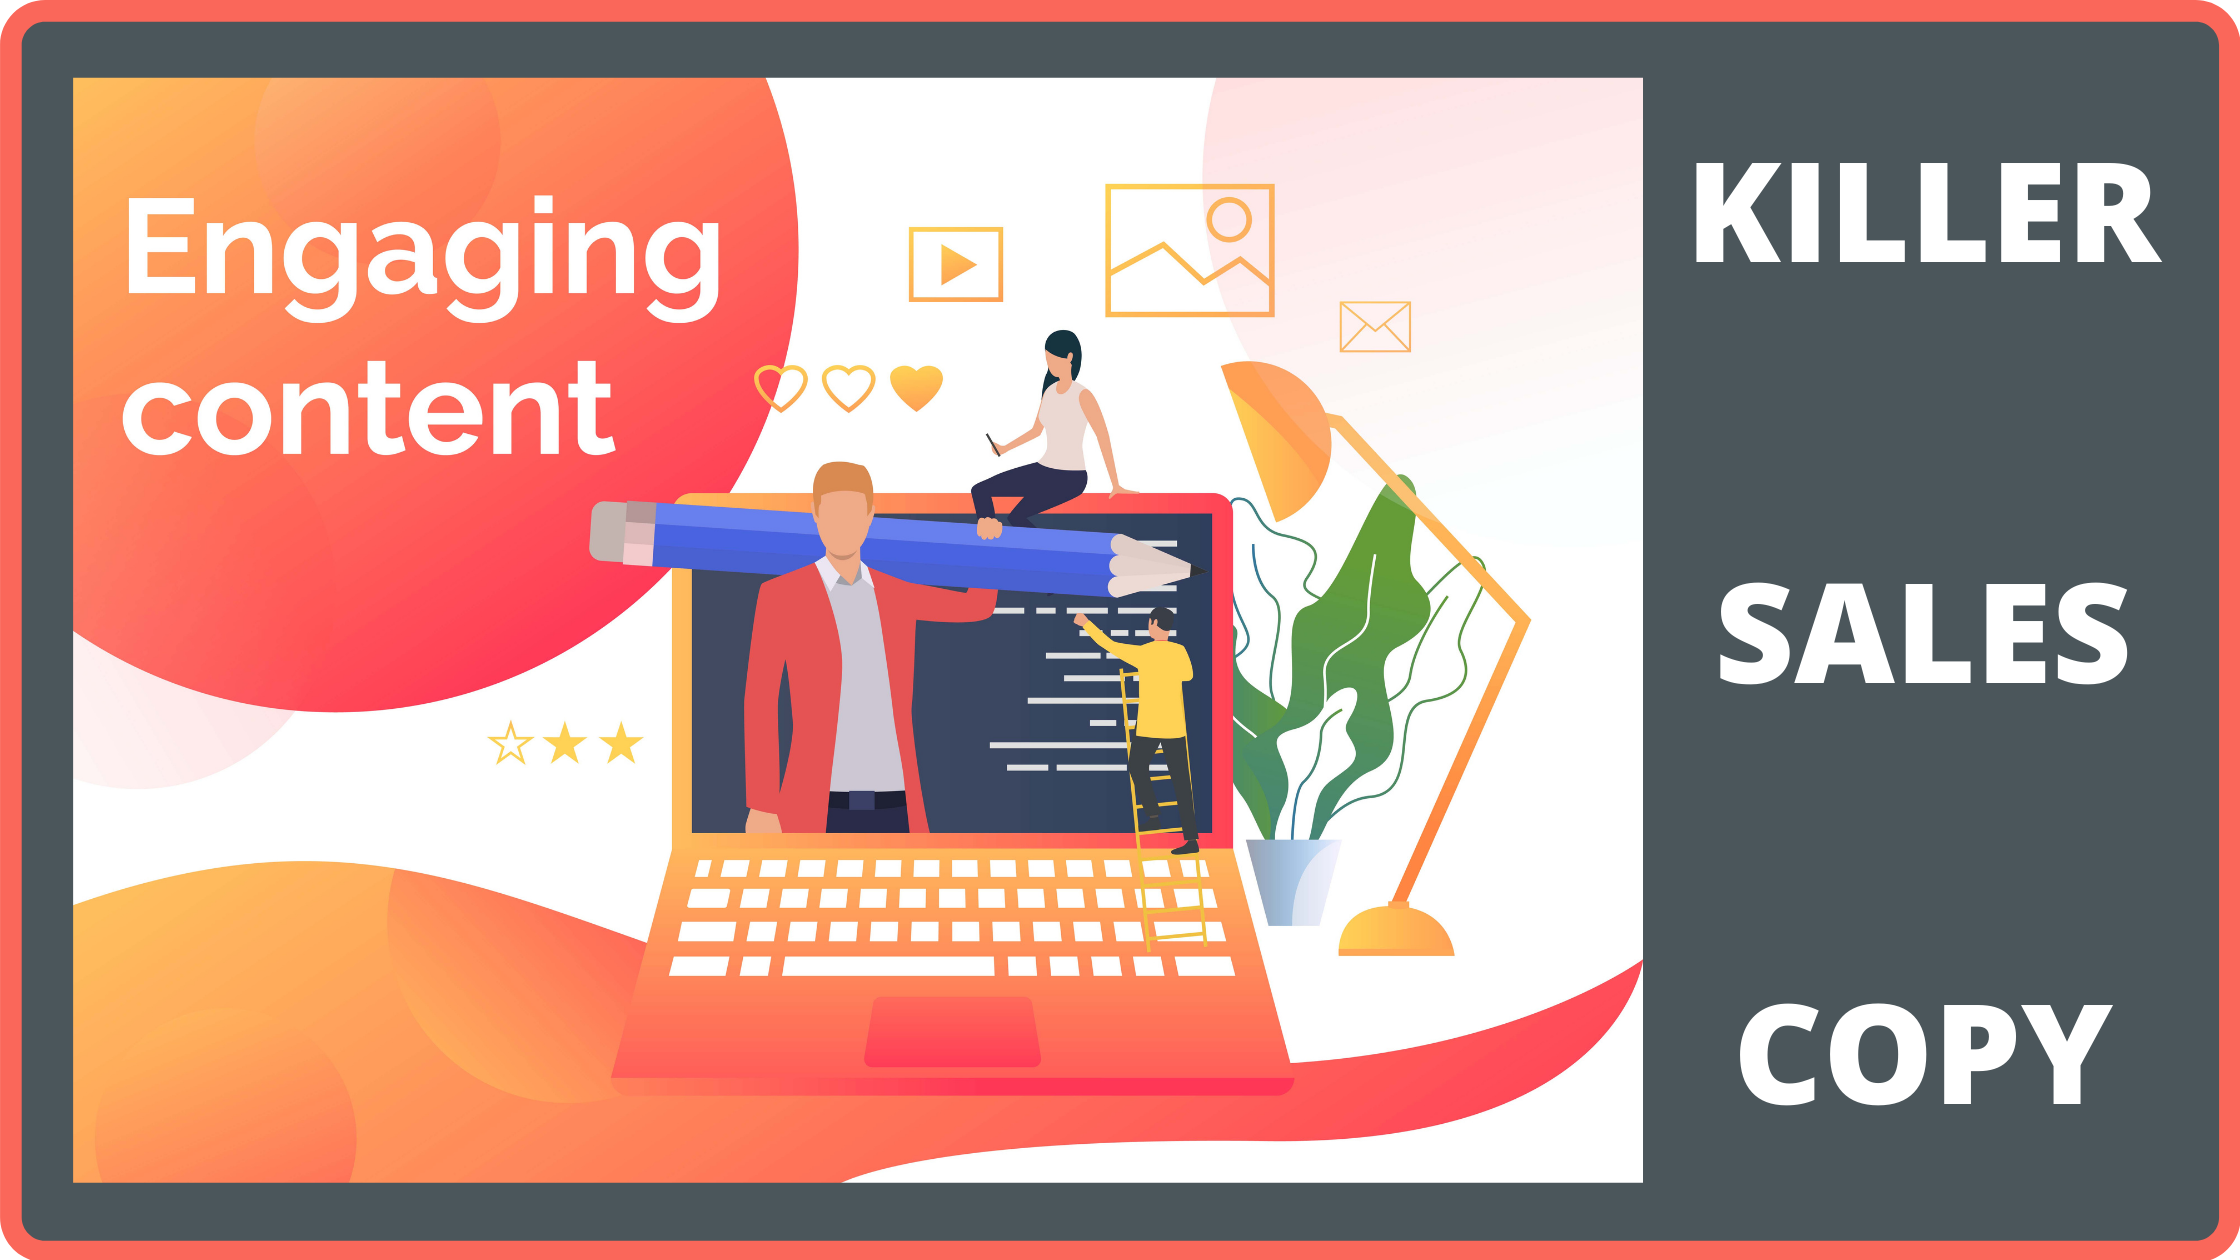 Creating a killer sales copy for your online courses